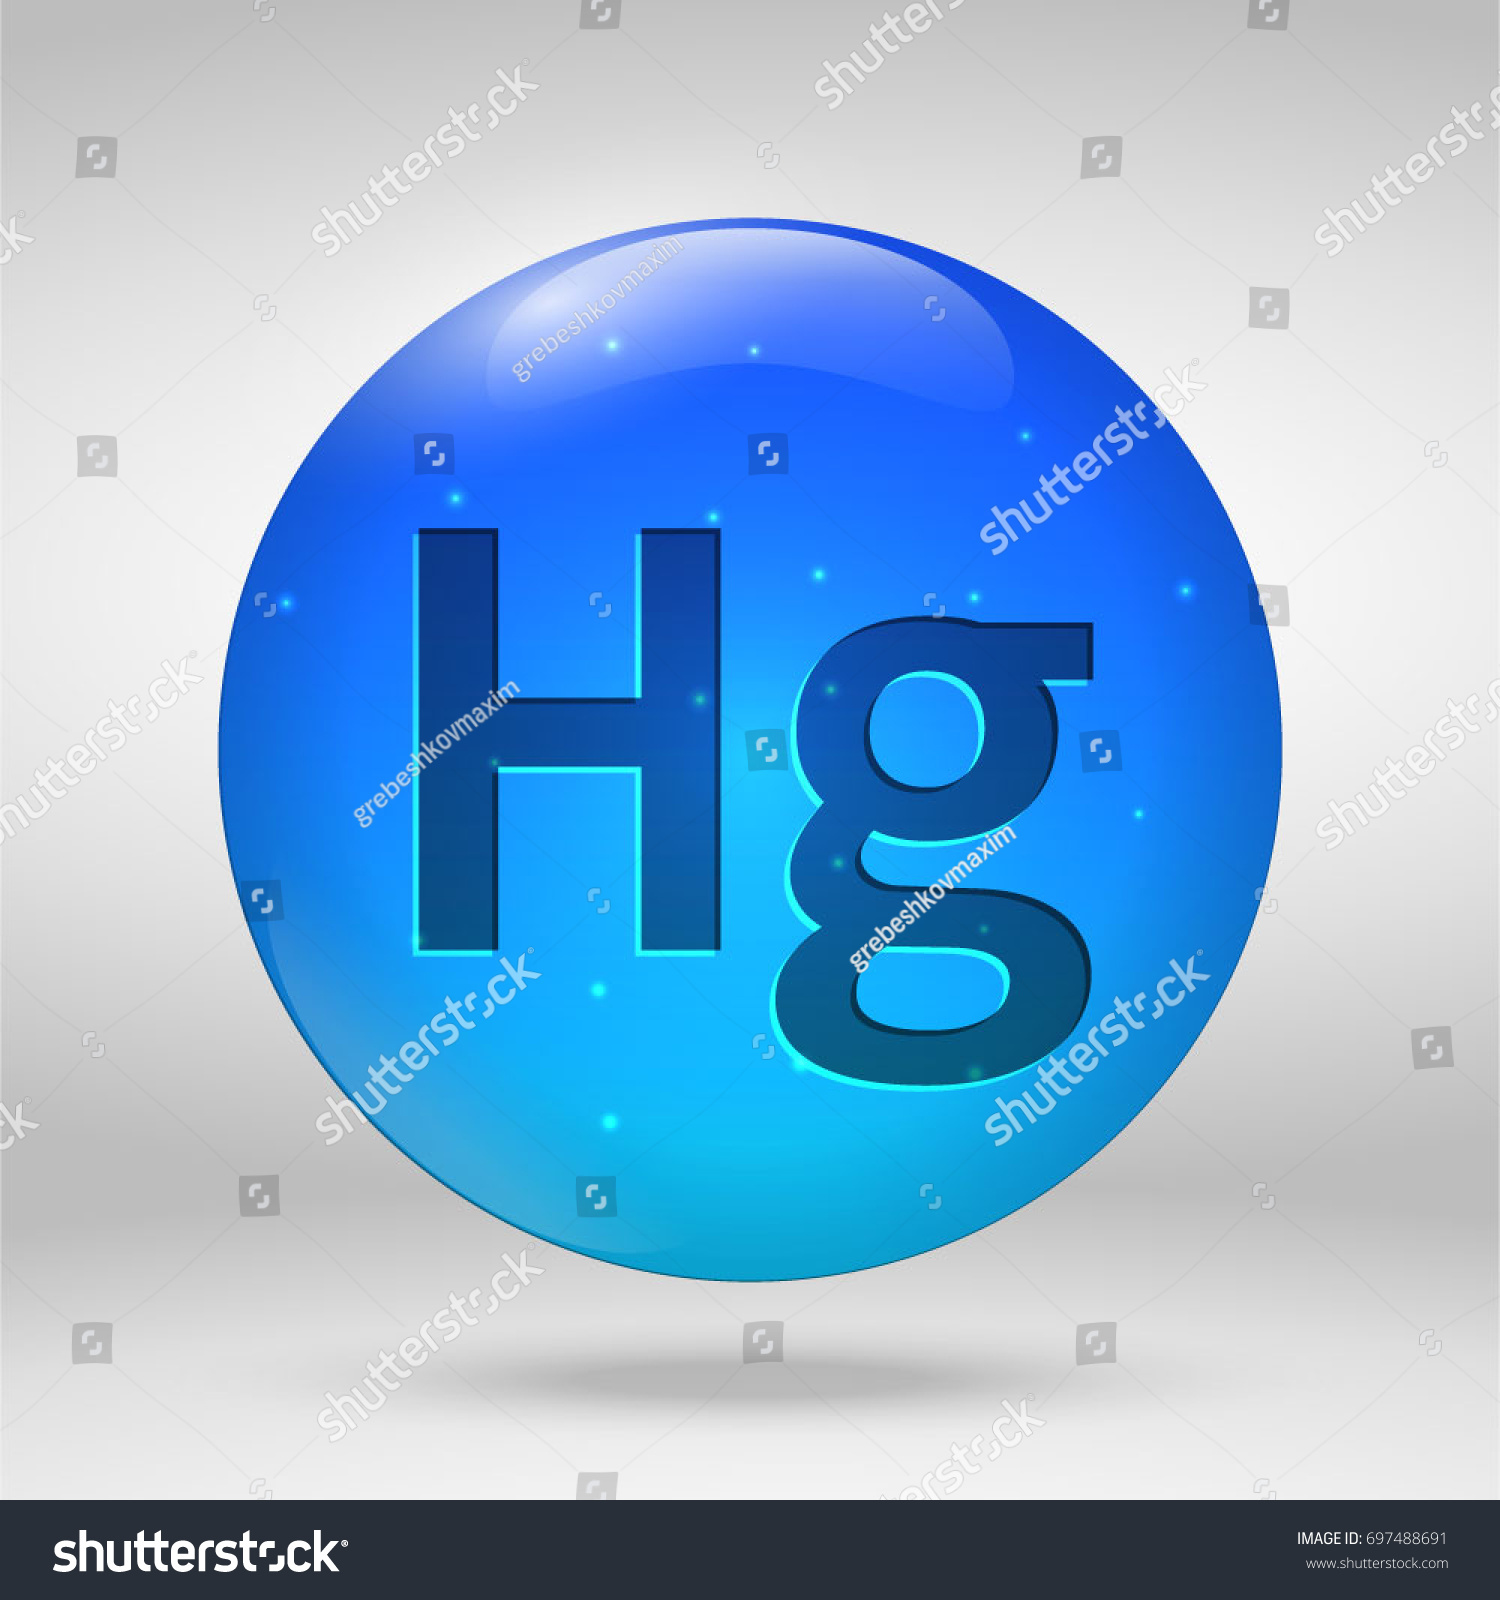 Mercury element periodic table vector 3 d stock vector 697488691 mercury element of the periodic table vector 3d glossy drop pill capsule icon urtaz Images